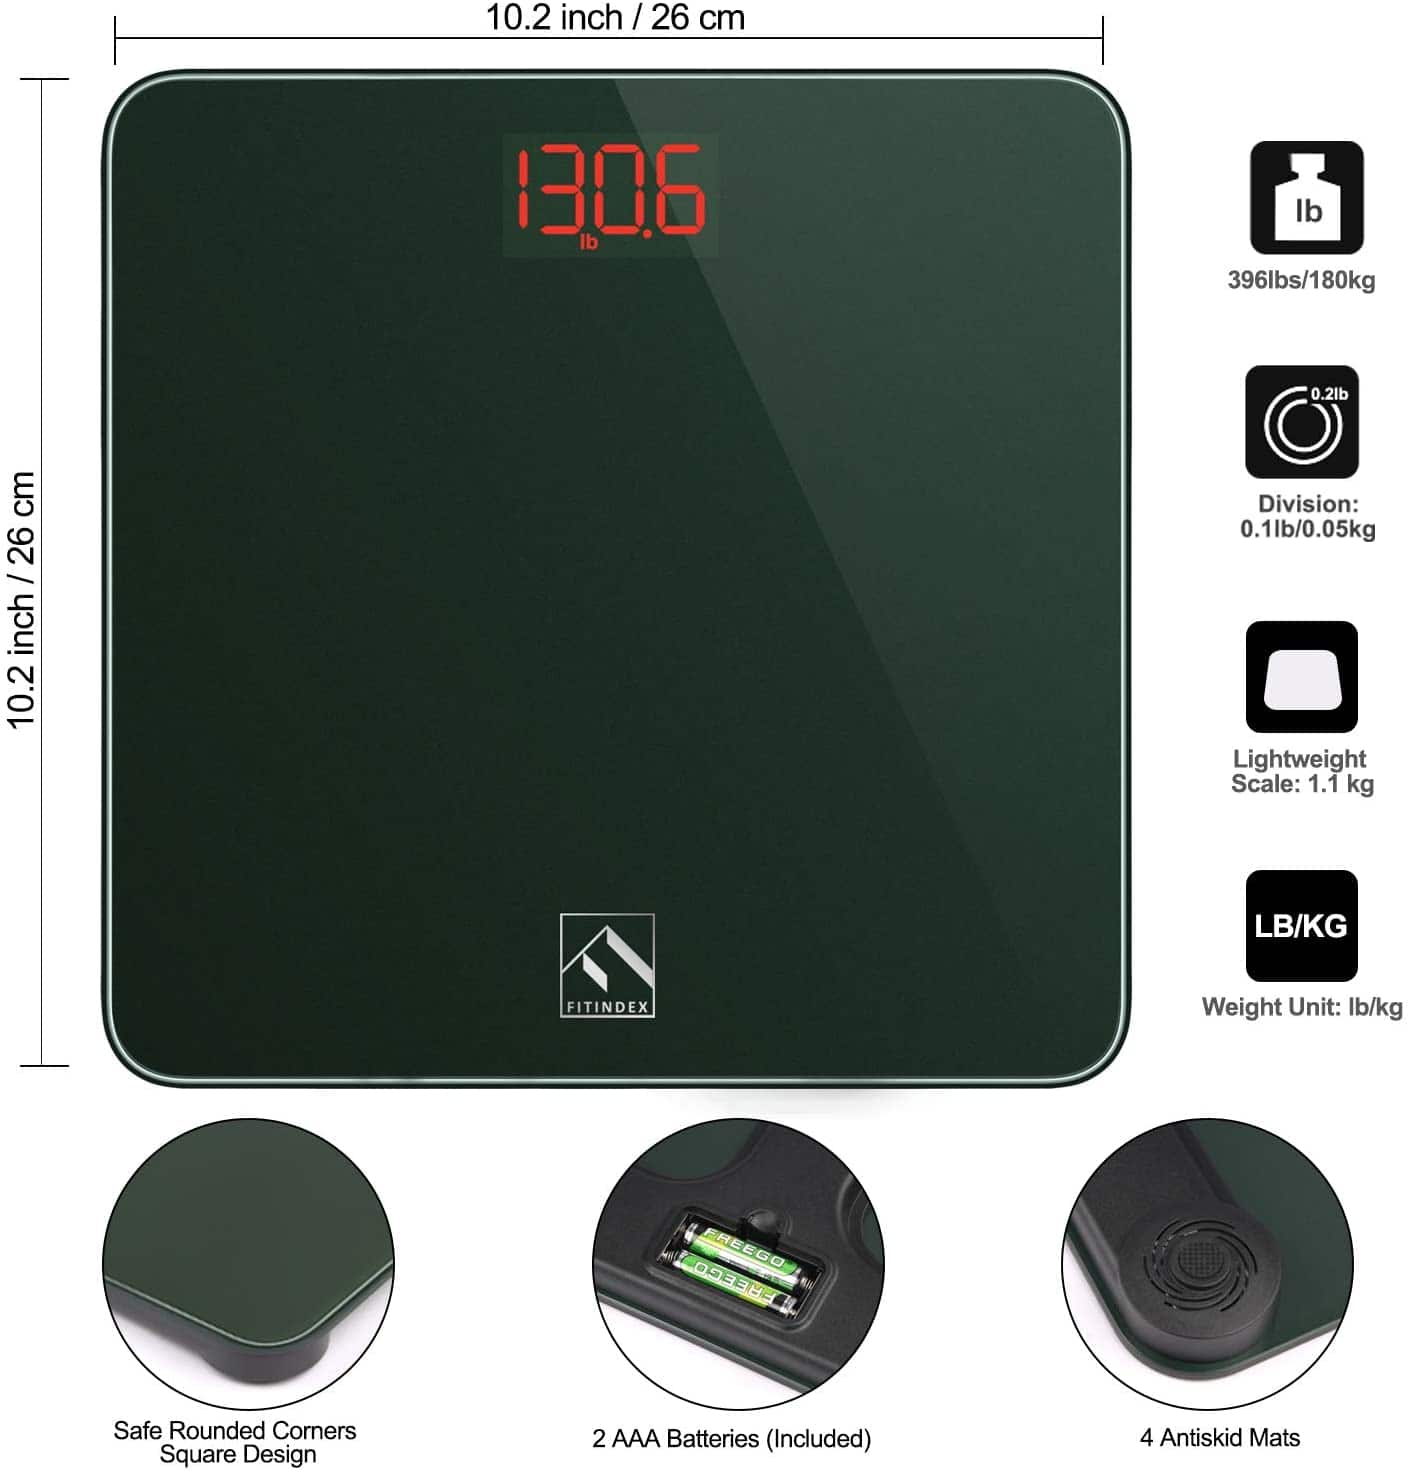 FITINDEX Smart Digital Body Weight Scale - Works with Apple Health, Samsung Health and Google Fit - Prime Price - $13.51